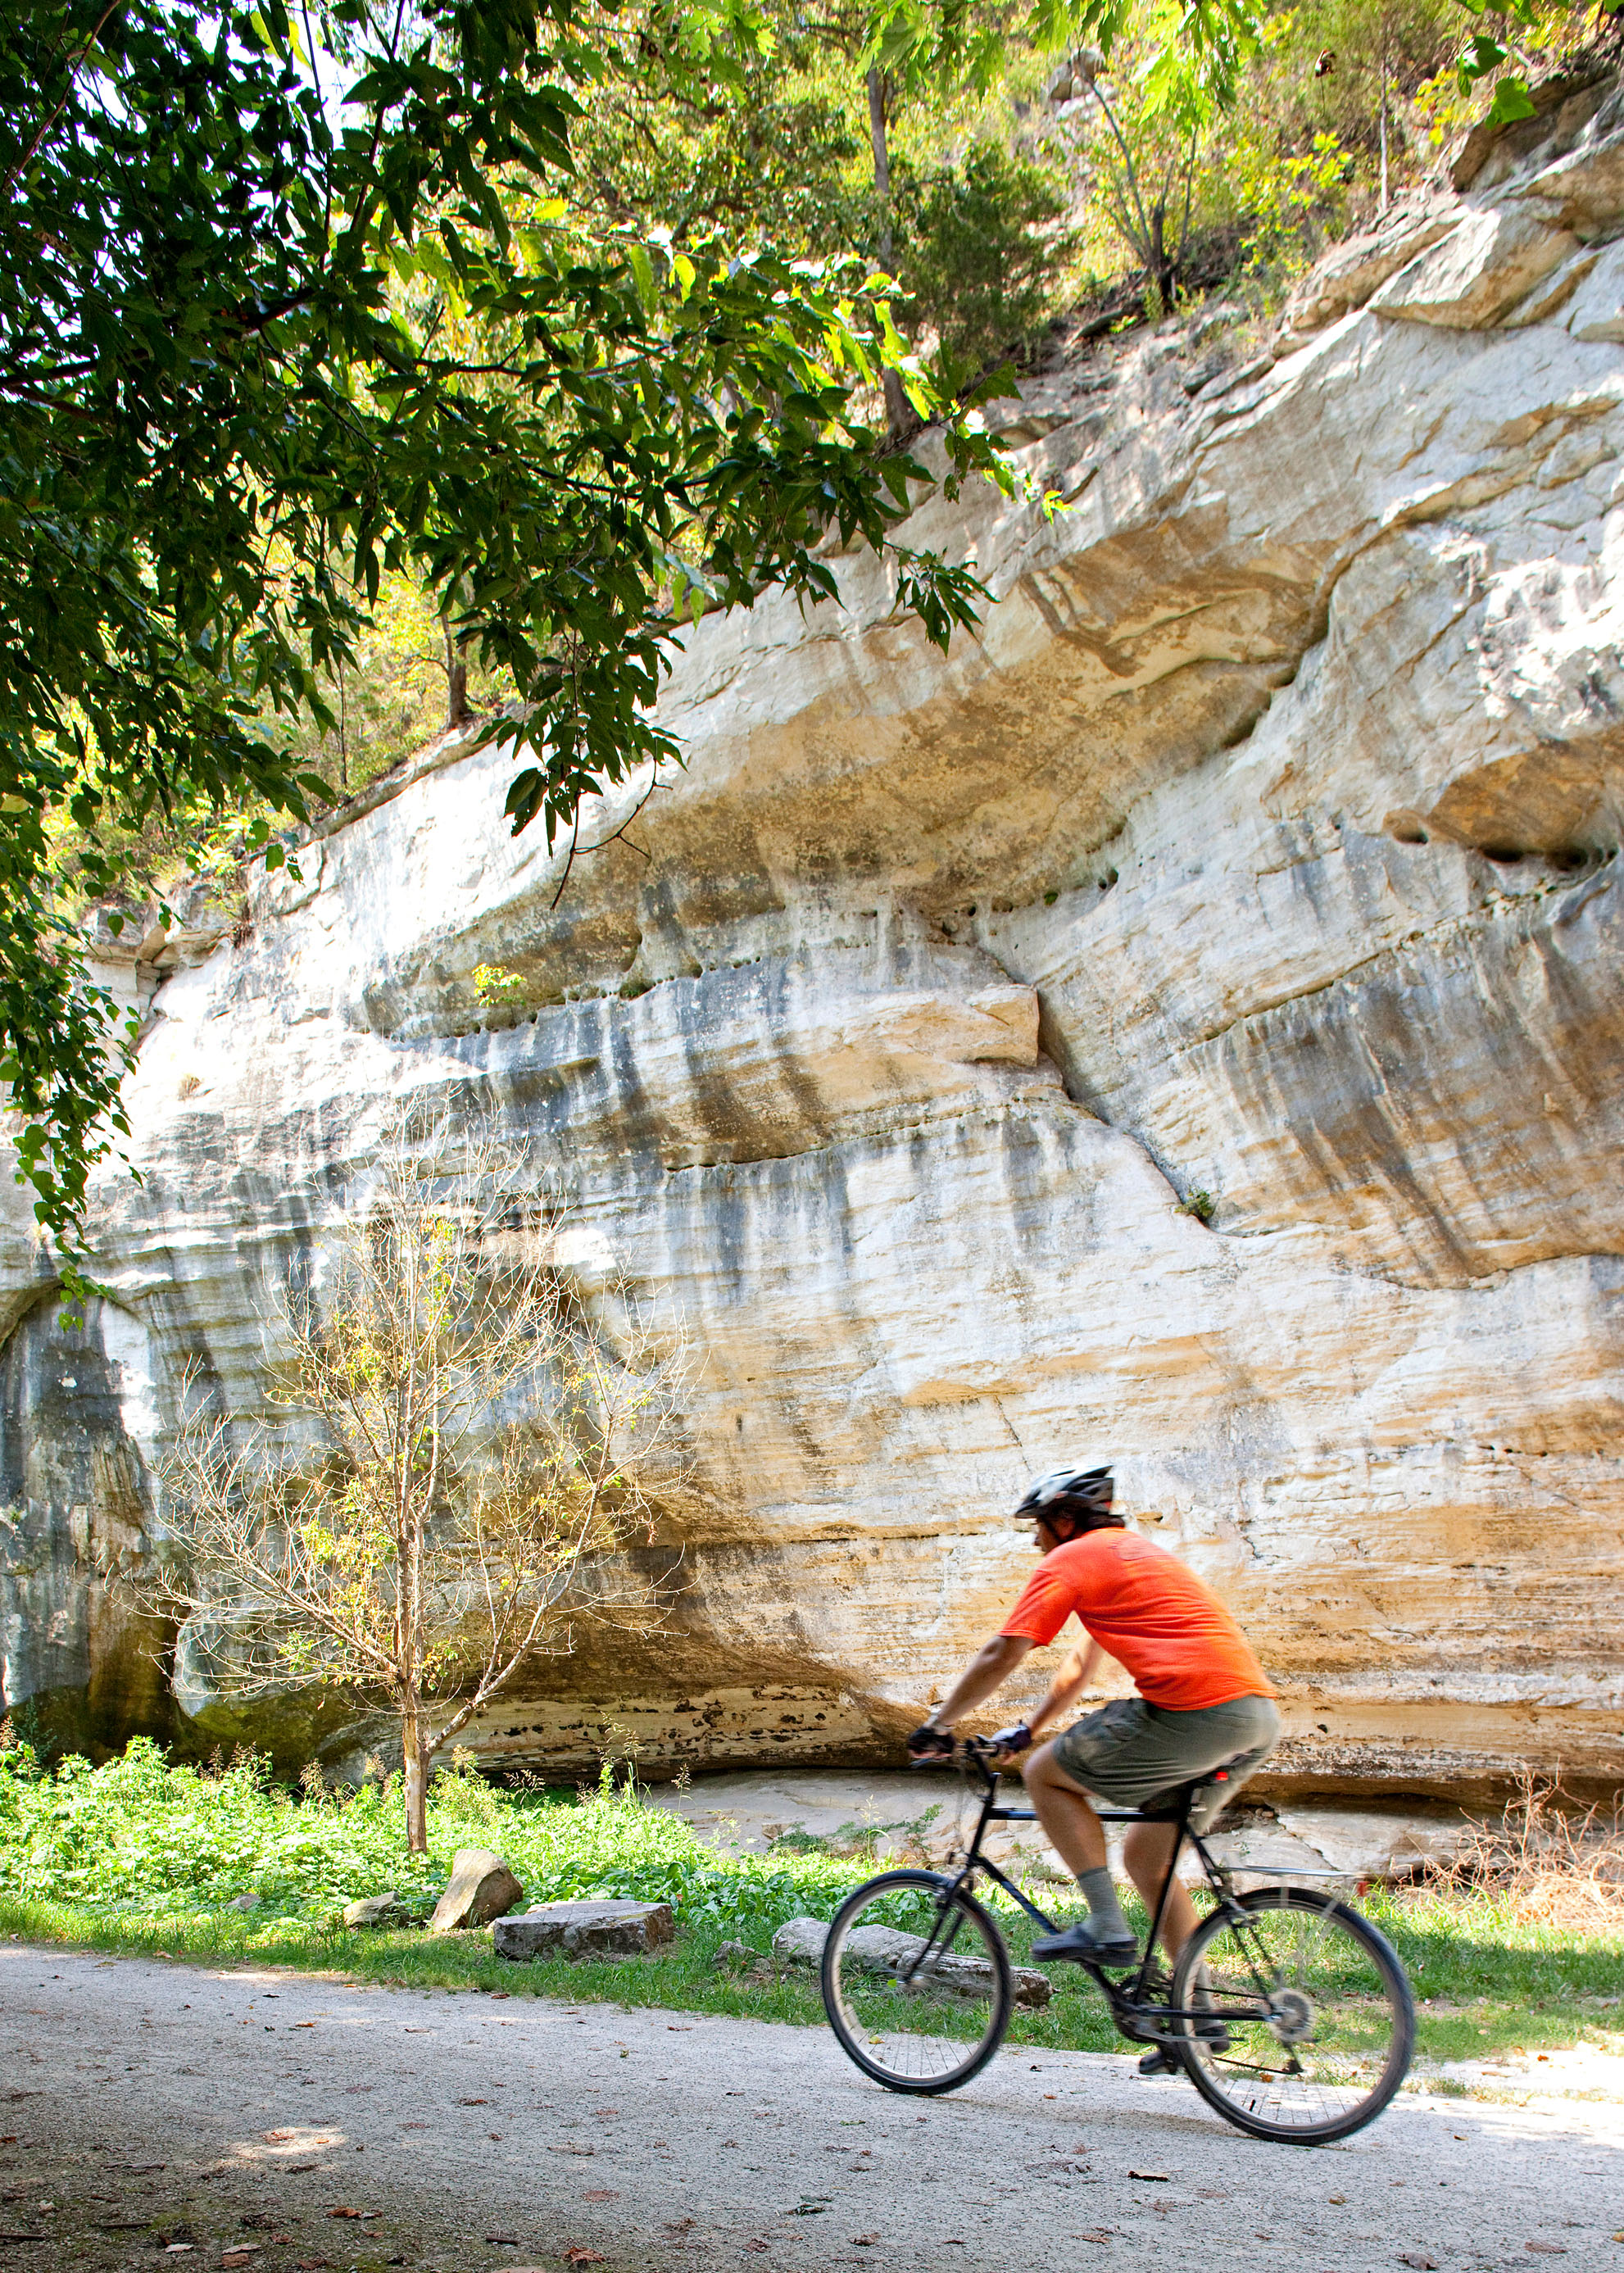 Missouri: Katy Trail State Park